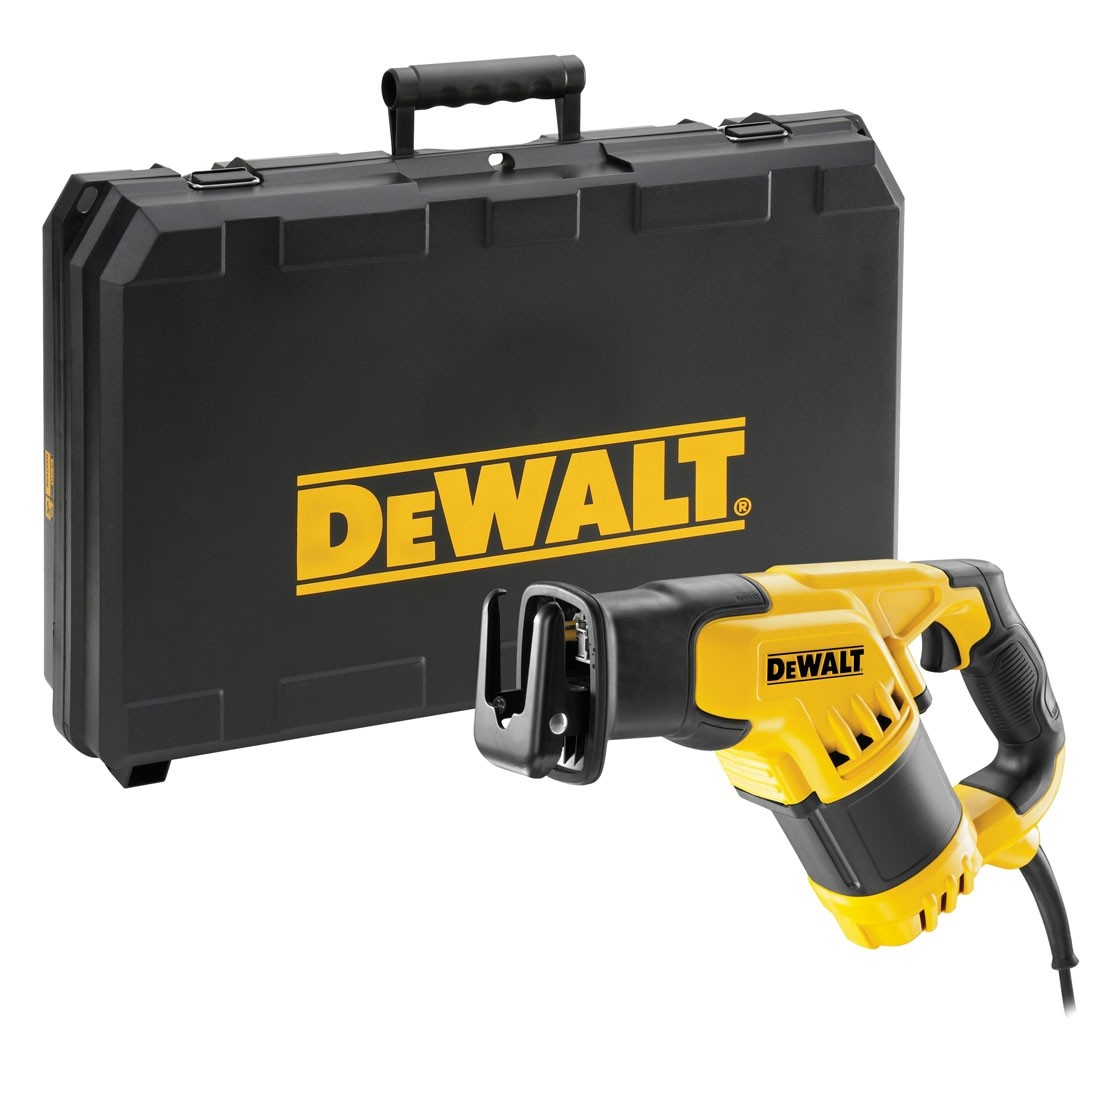 Dewalt dwe357k compact reciprocating saw in carry case powertool world greentooth Image collections